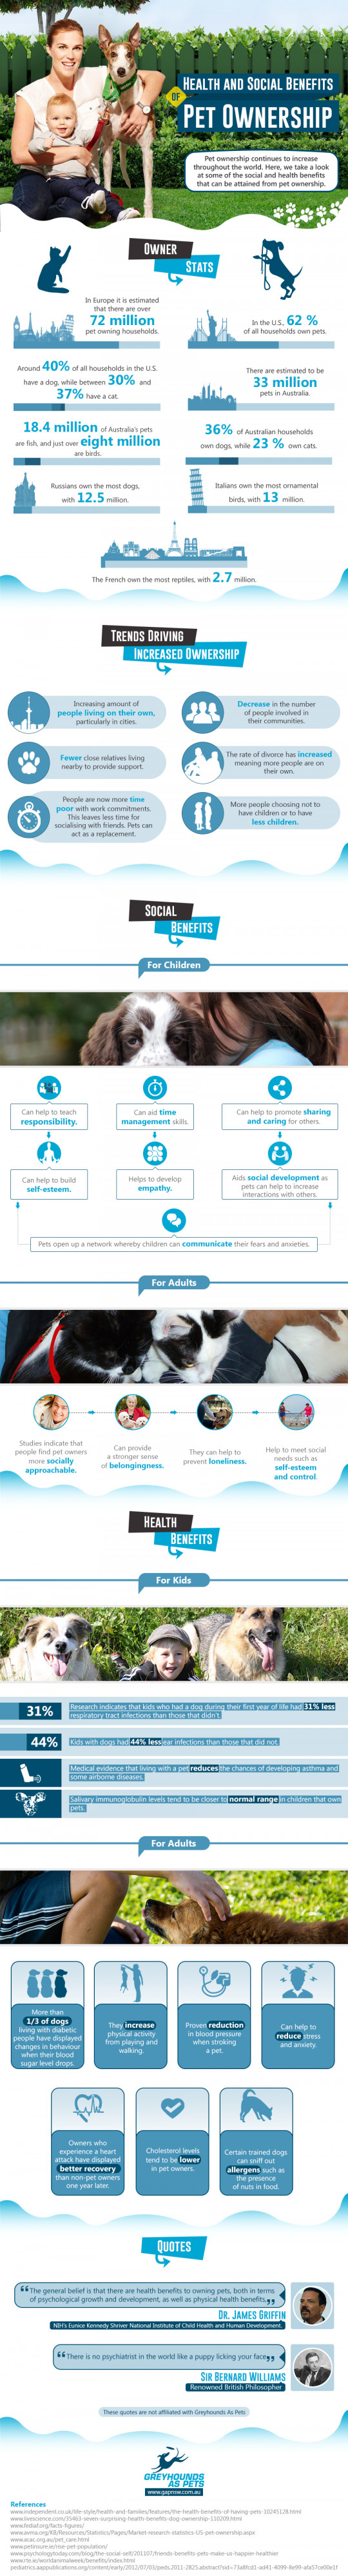 Health and Social Benefits of Pet Ownership